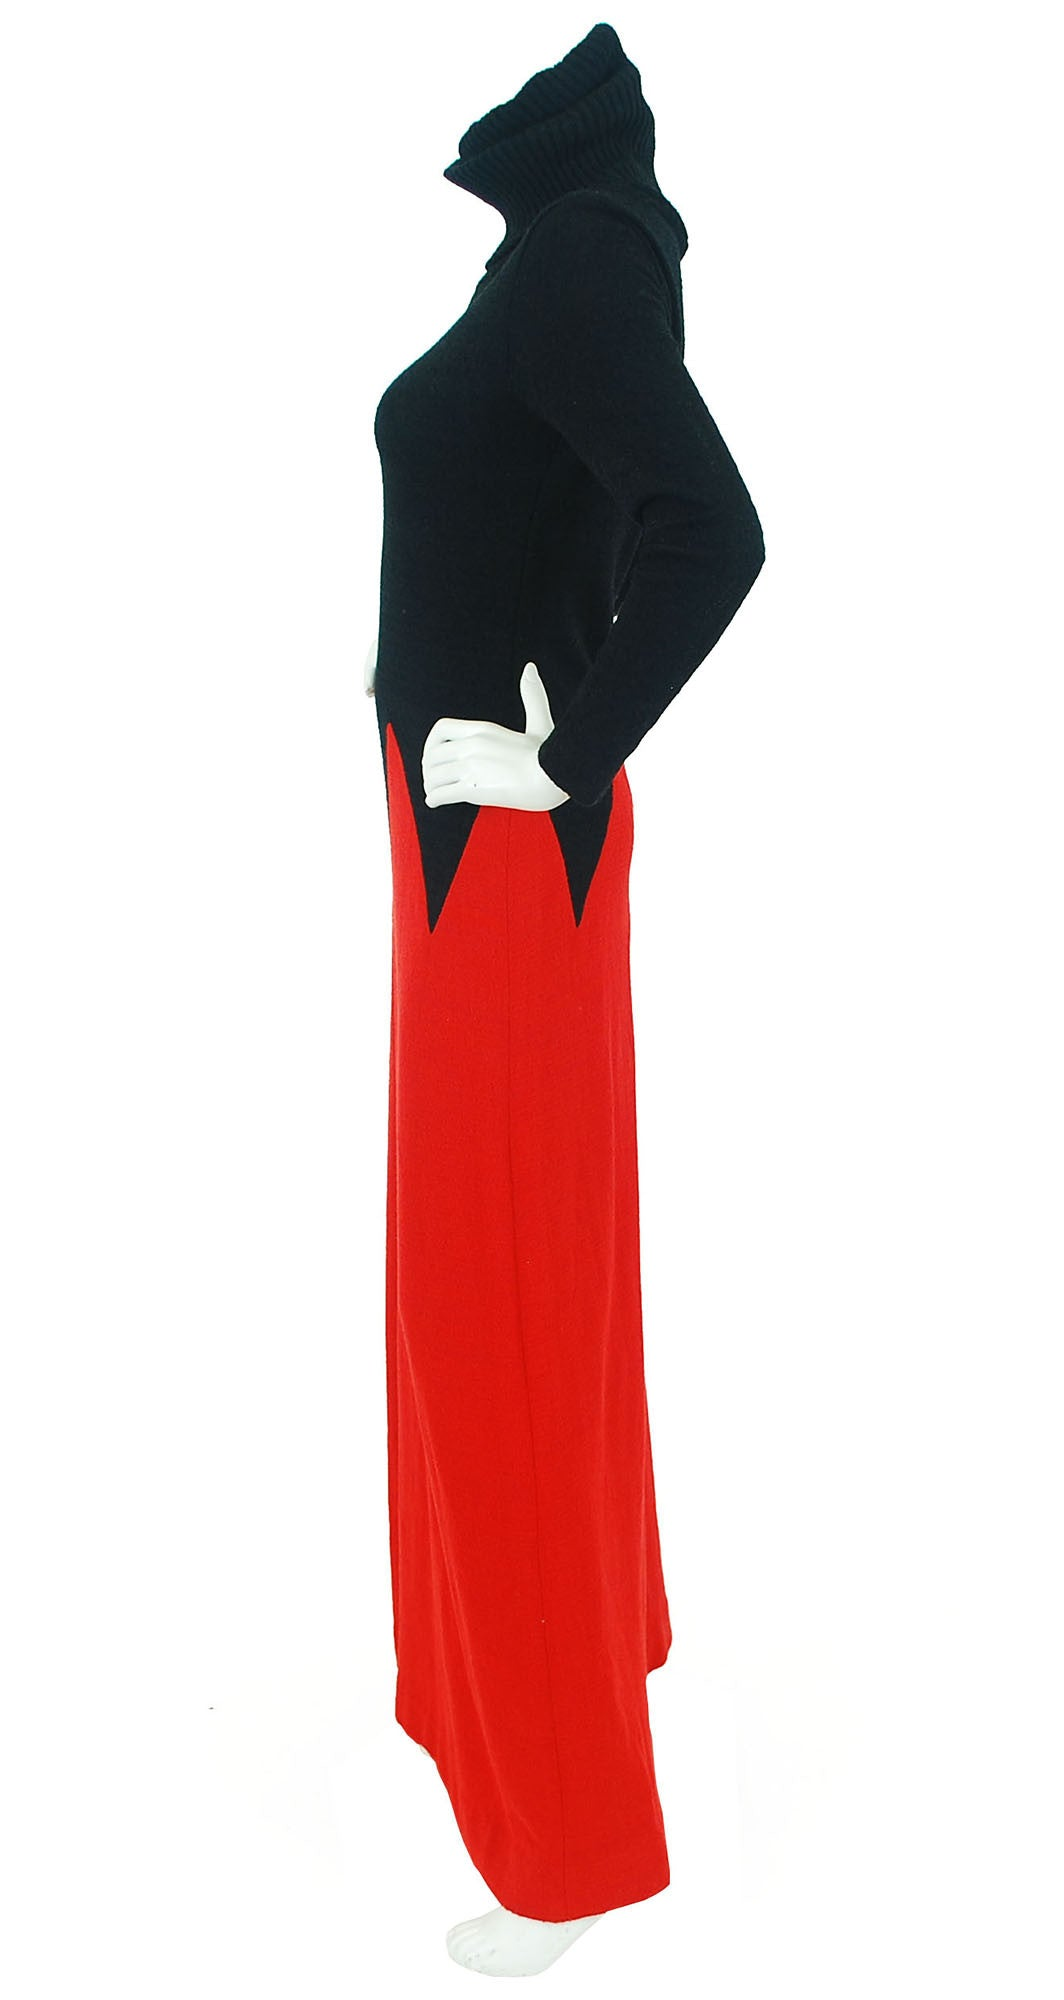 1970s Black & Red Zig-Zag Knit Maxi Dress